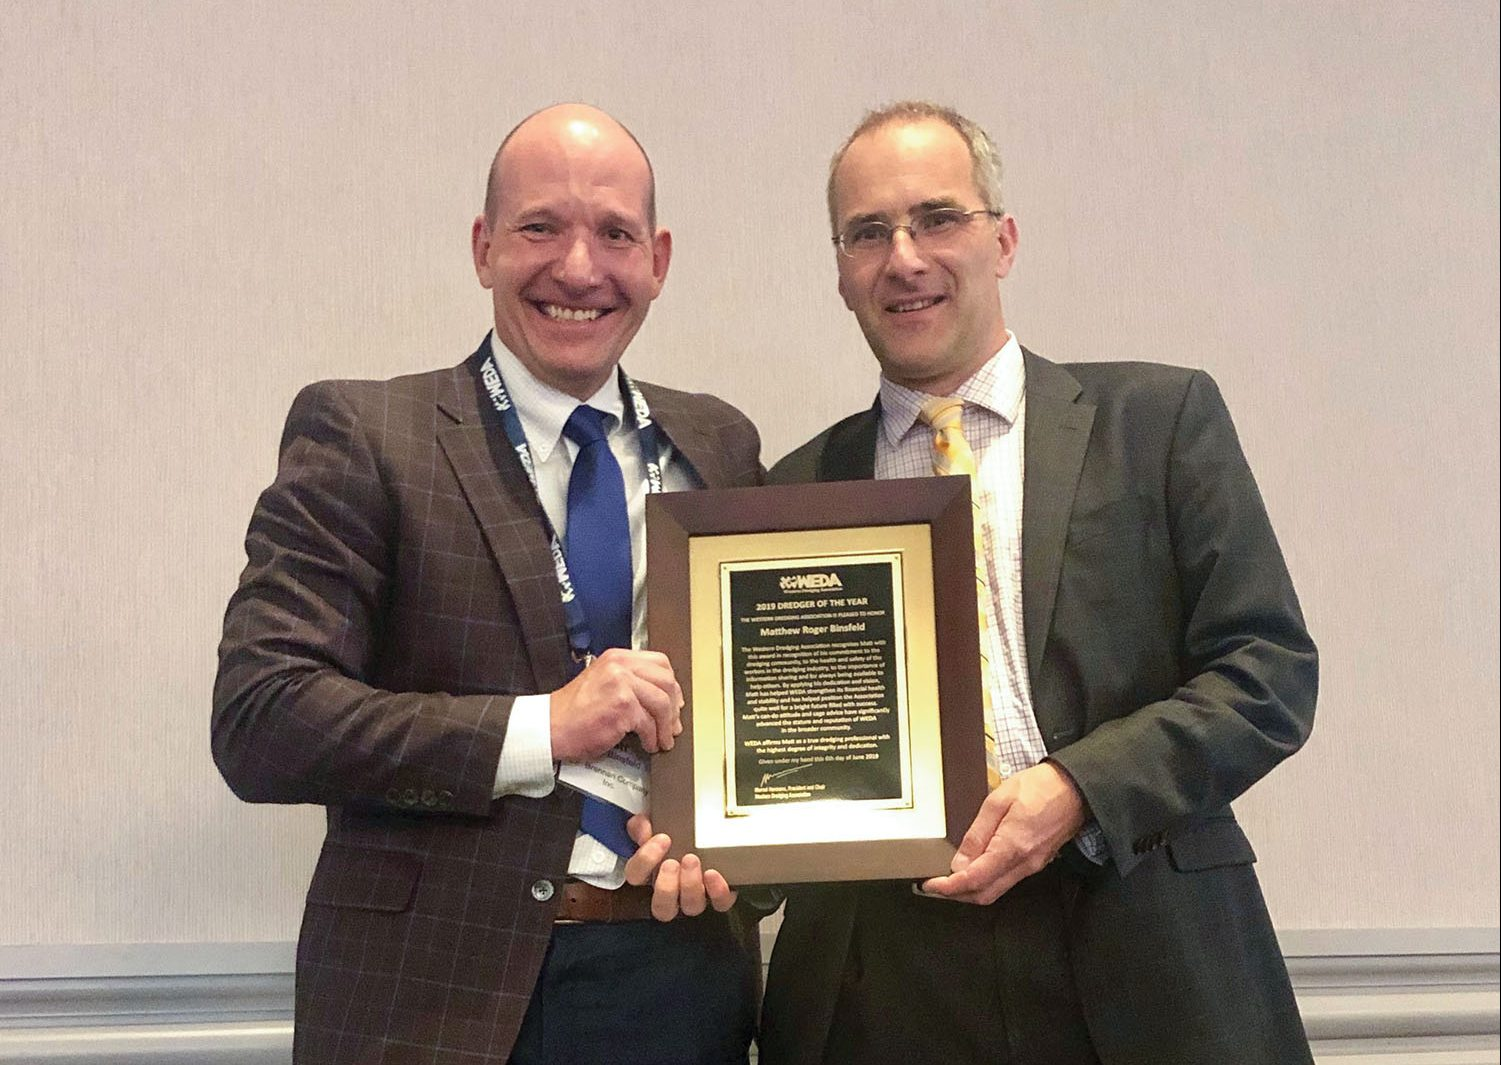 Matt Binsfeld, left, president and CEO of J.F. Brennan Company, receives the 2019 Dredger of the Year award from Marcel Hermans, president and chairman of WEDA, during the WEDA Dredging Summit and Expo.